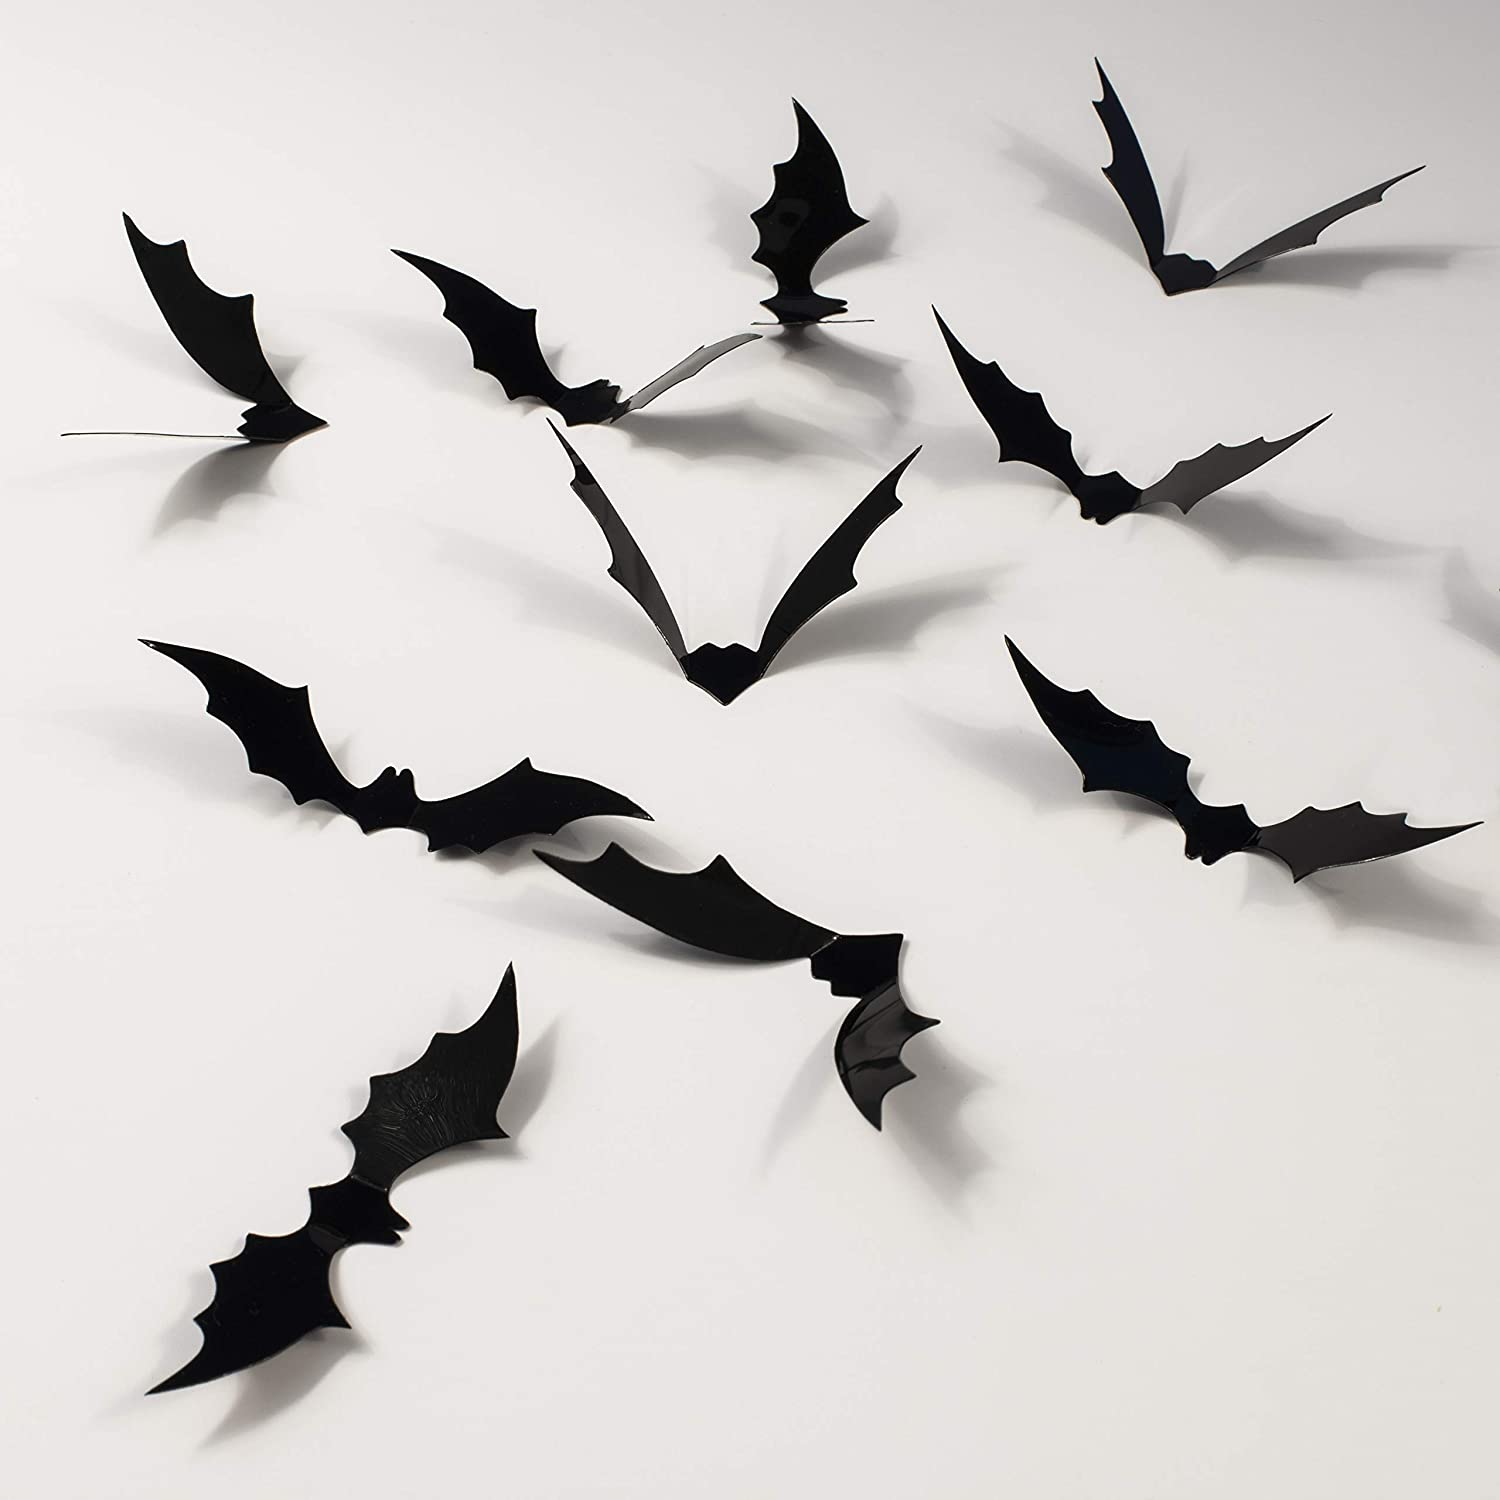 Whaline 72 Pack Halloween 3D Bats Stickers Plastic Wall Bat Decals for Home Window Decor Party Supplies Black